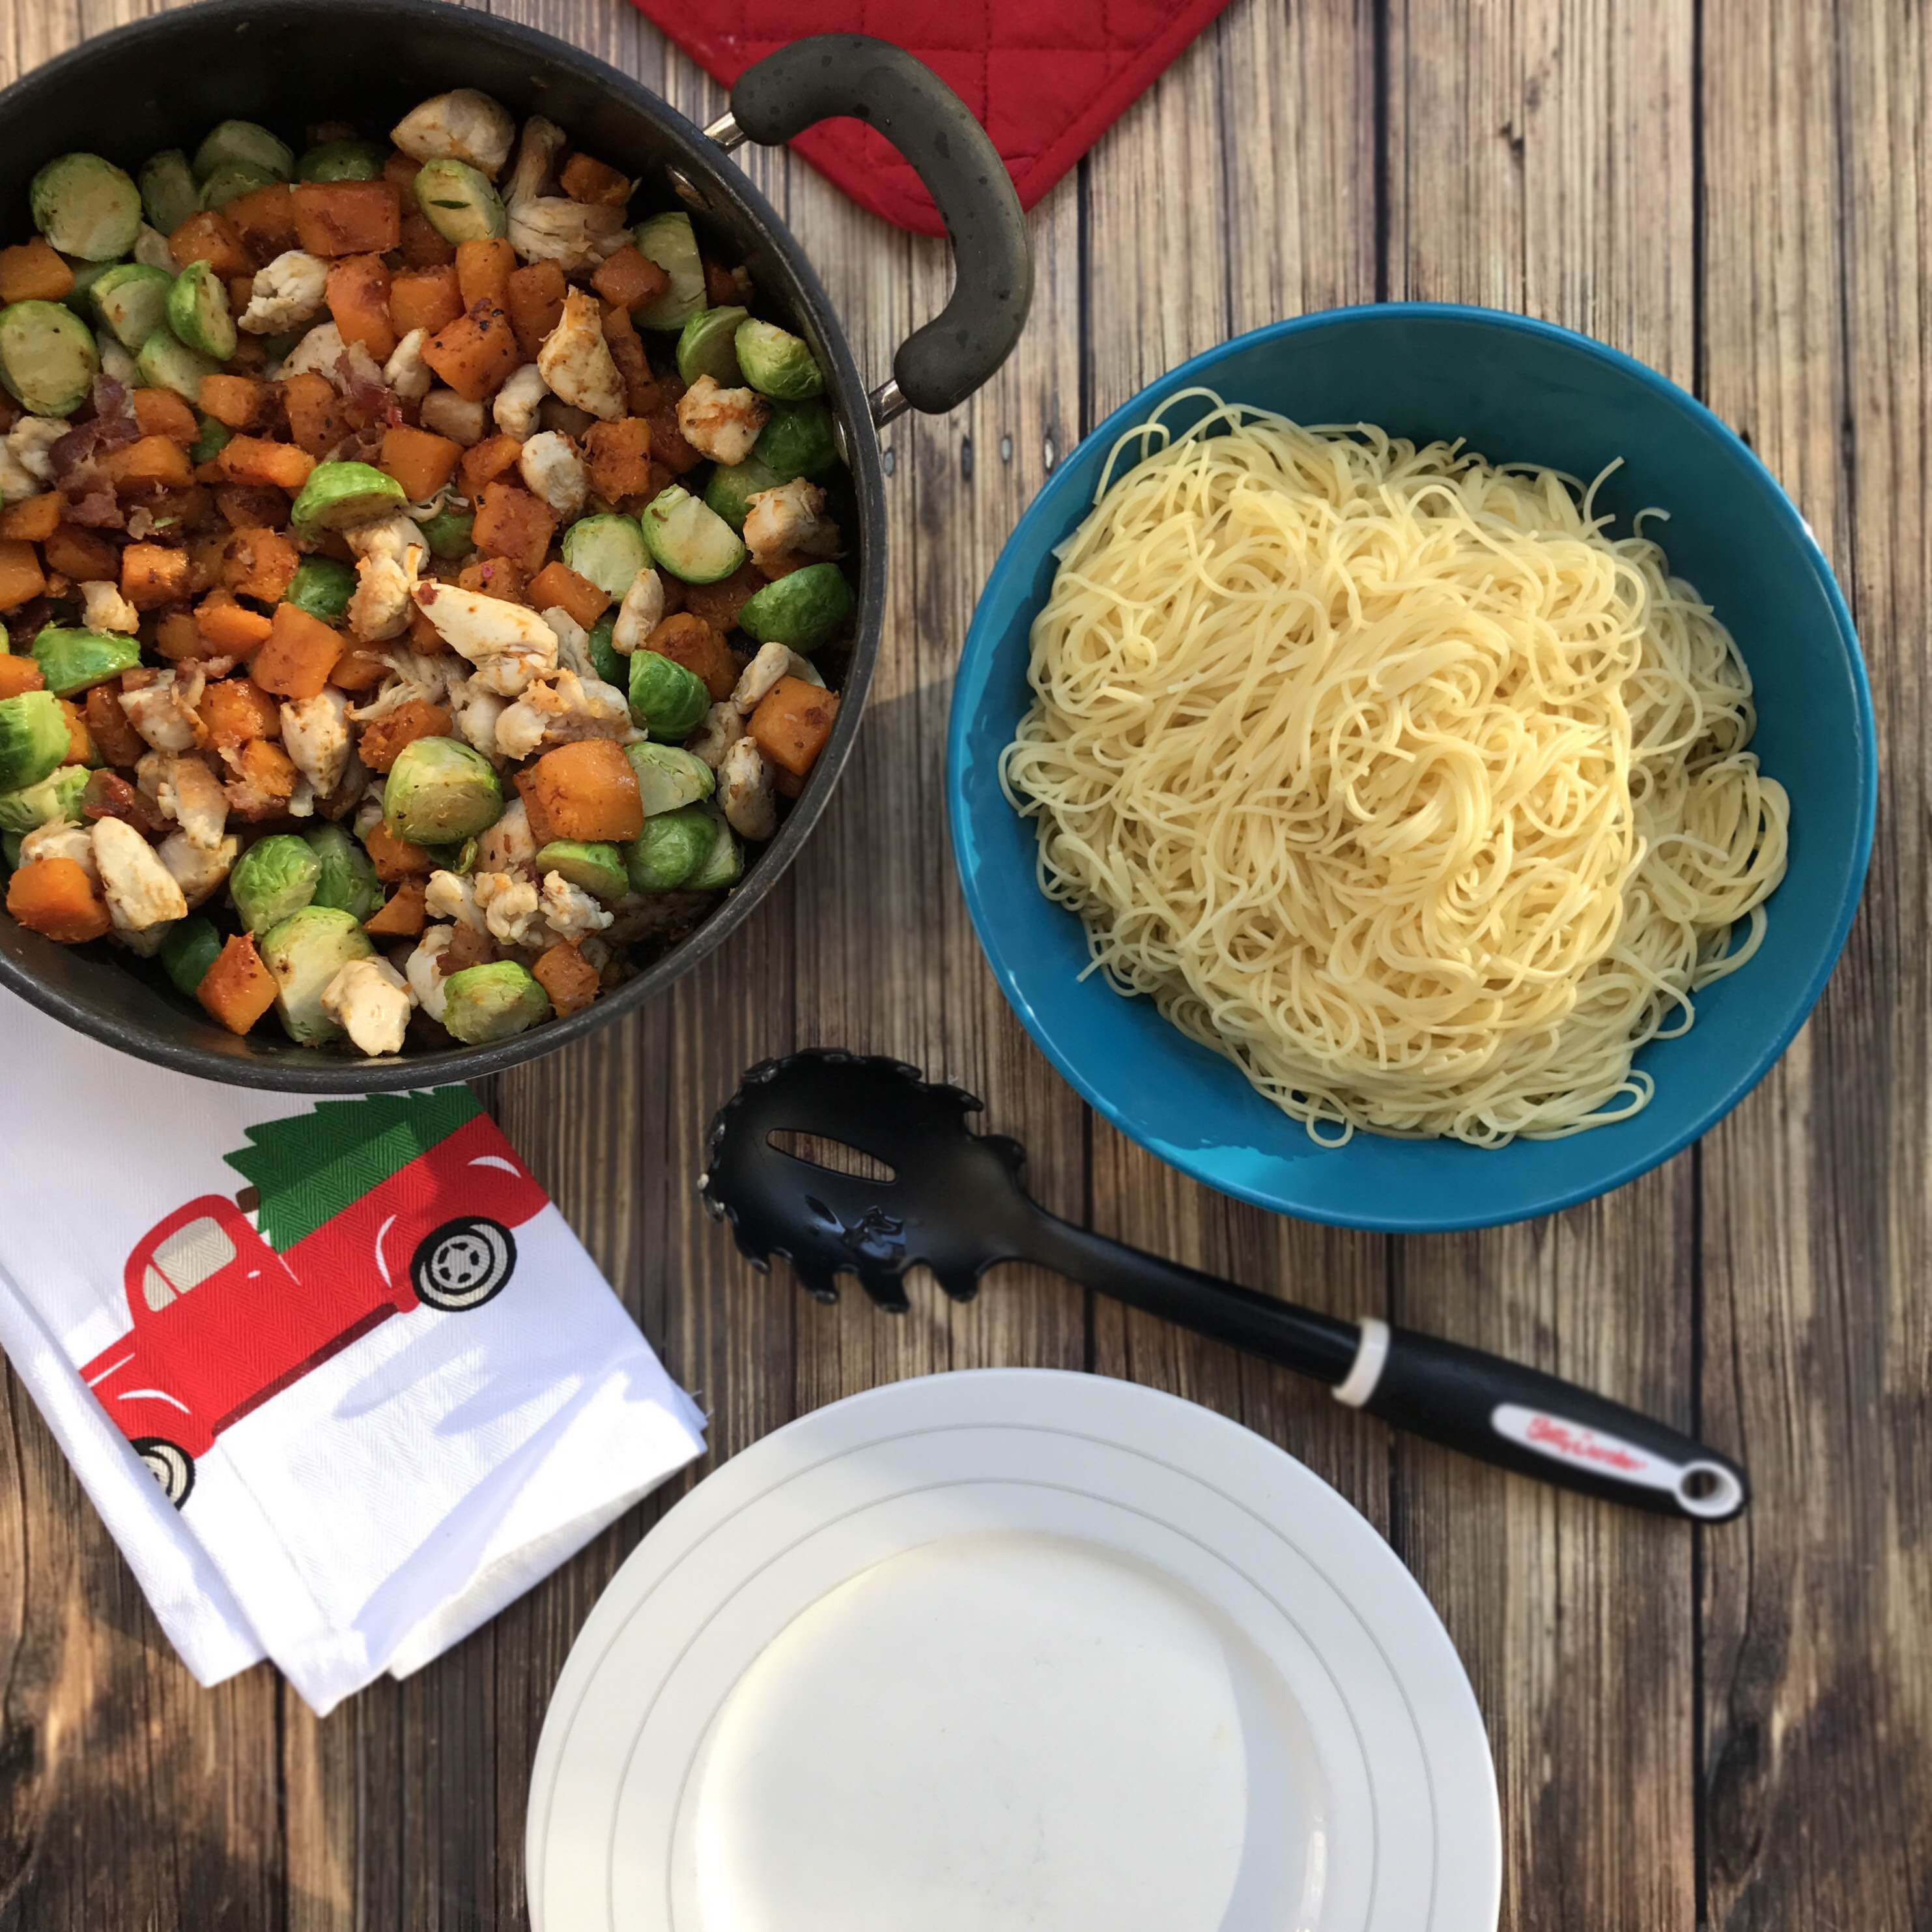 Maple butternut squash and chicken pasta | Angel hair with squash and brussels sprouts | Brussels sprouts and squash over pasta | Easy winter pasta recipes | GinaKirk.com @ginaekirk